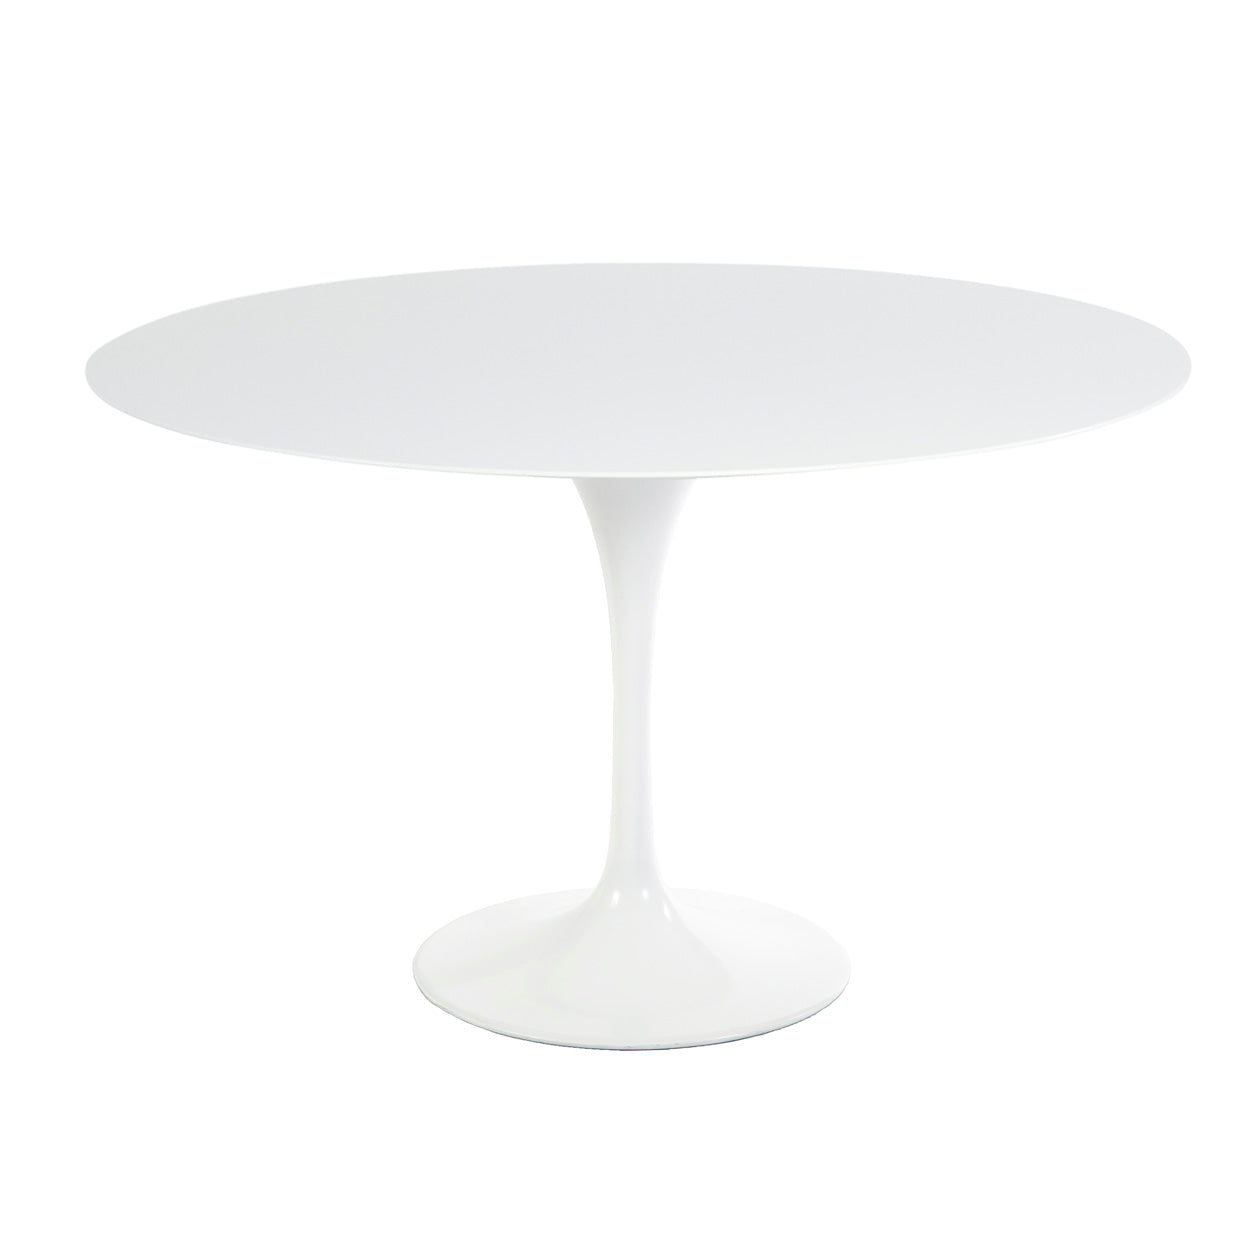 Picture of: Mid Century Round Quartz Tulip Dining Table Inspired By Eero Saarinen France Son